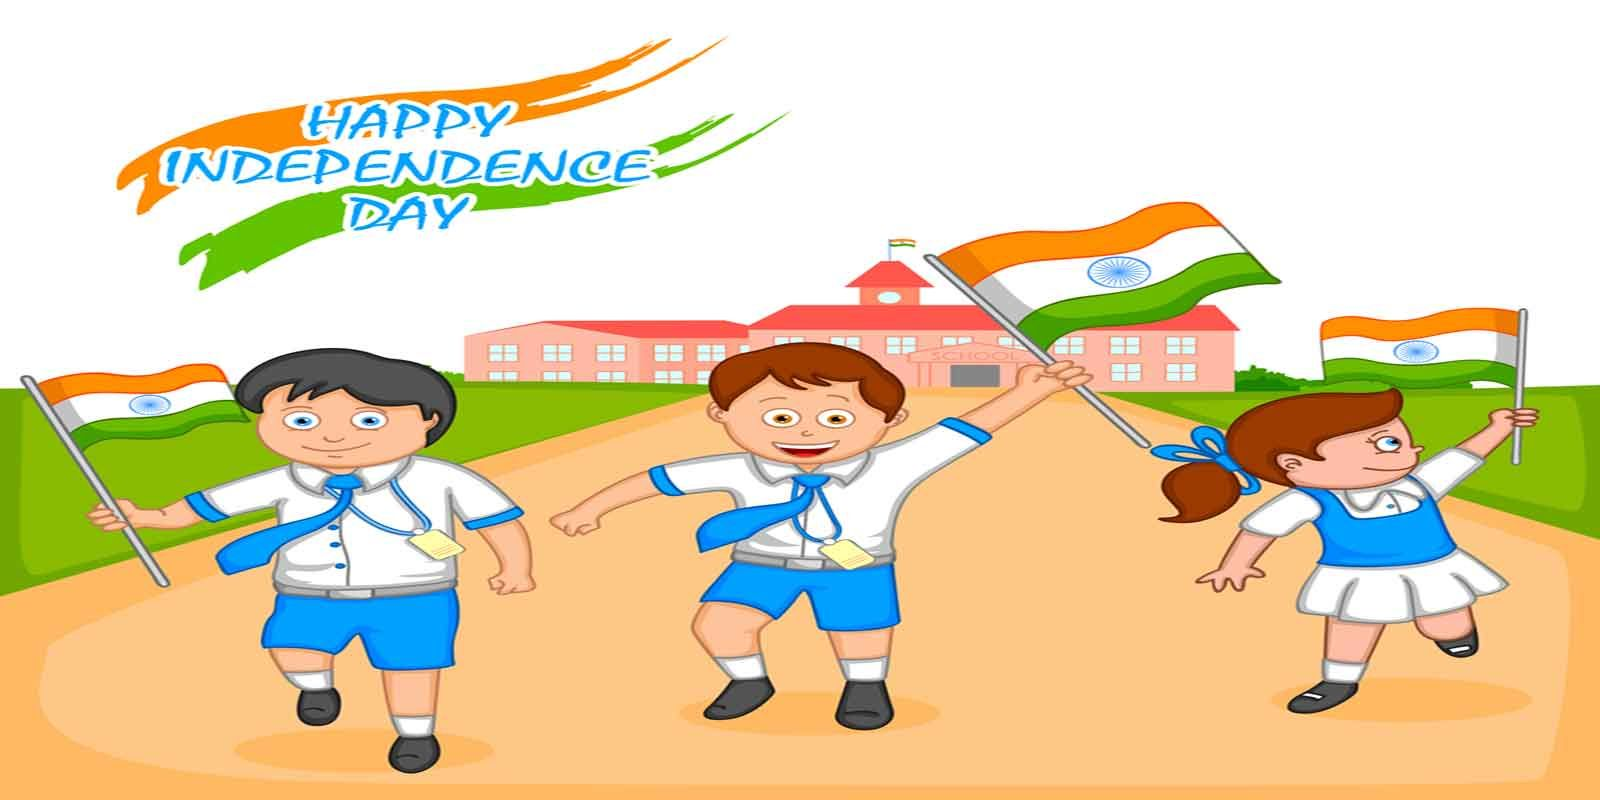 Independence Day Celebration In School Independence Day Independence Happy Independence